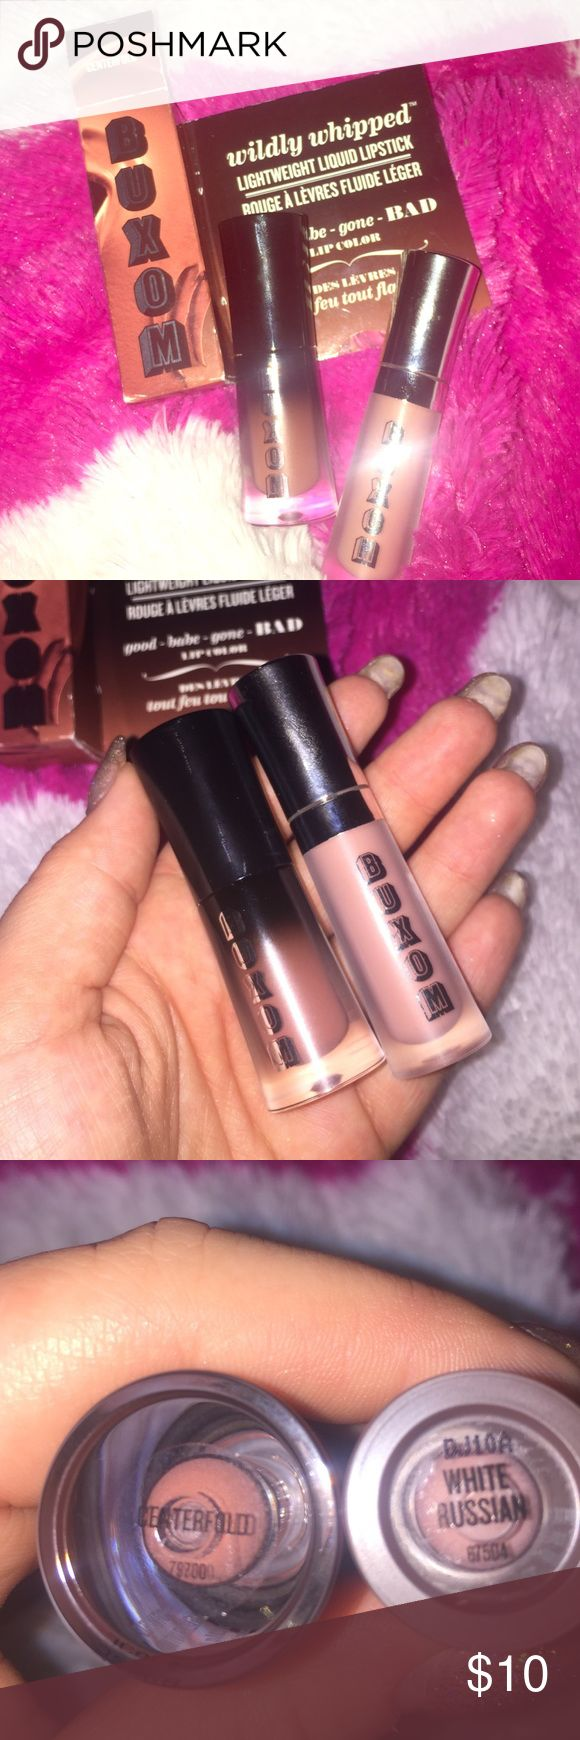 """Buxom Lip Bundle Travel size Buxom """"White Russian"""" full on lip cream brand new only swatched, and travel size Buxom wildly whipped liquid lipstick in """"Centerfold"""" brand new in box only swatched. I always send extras  Sephora Makeup Lipstick"""